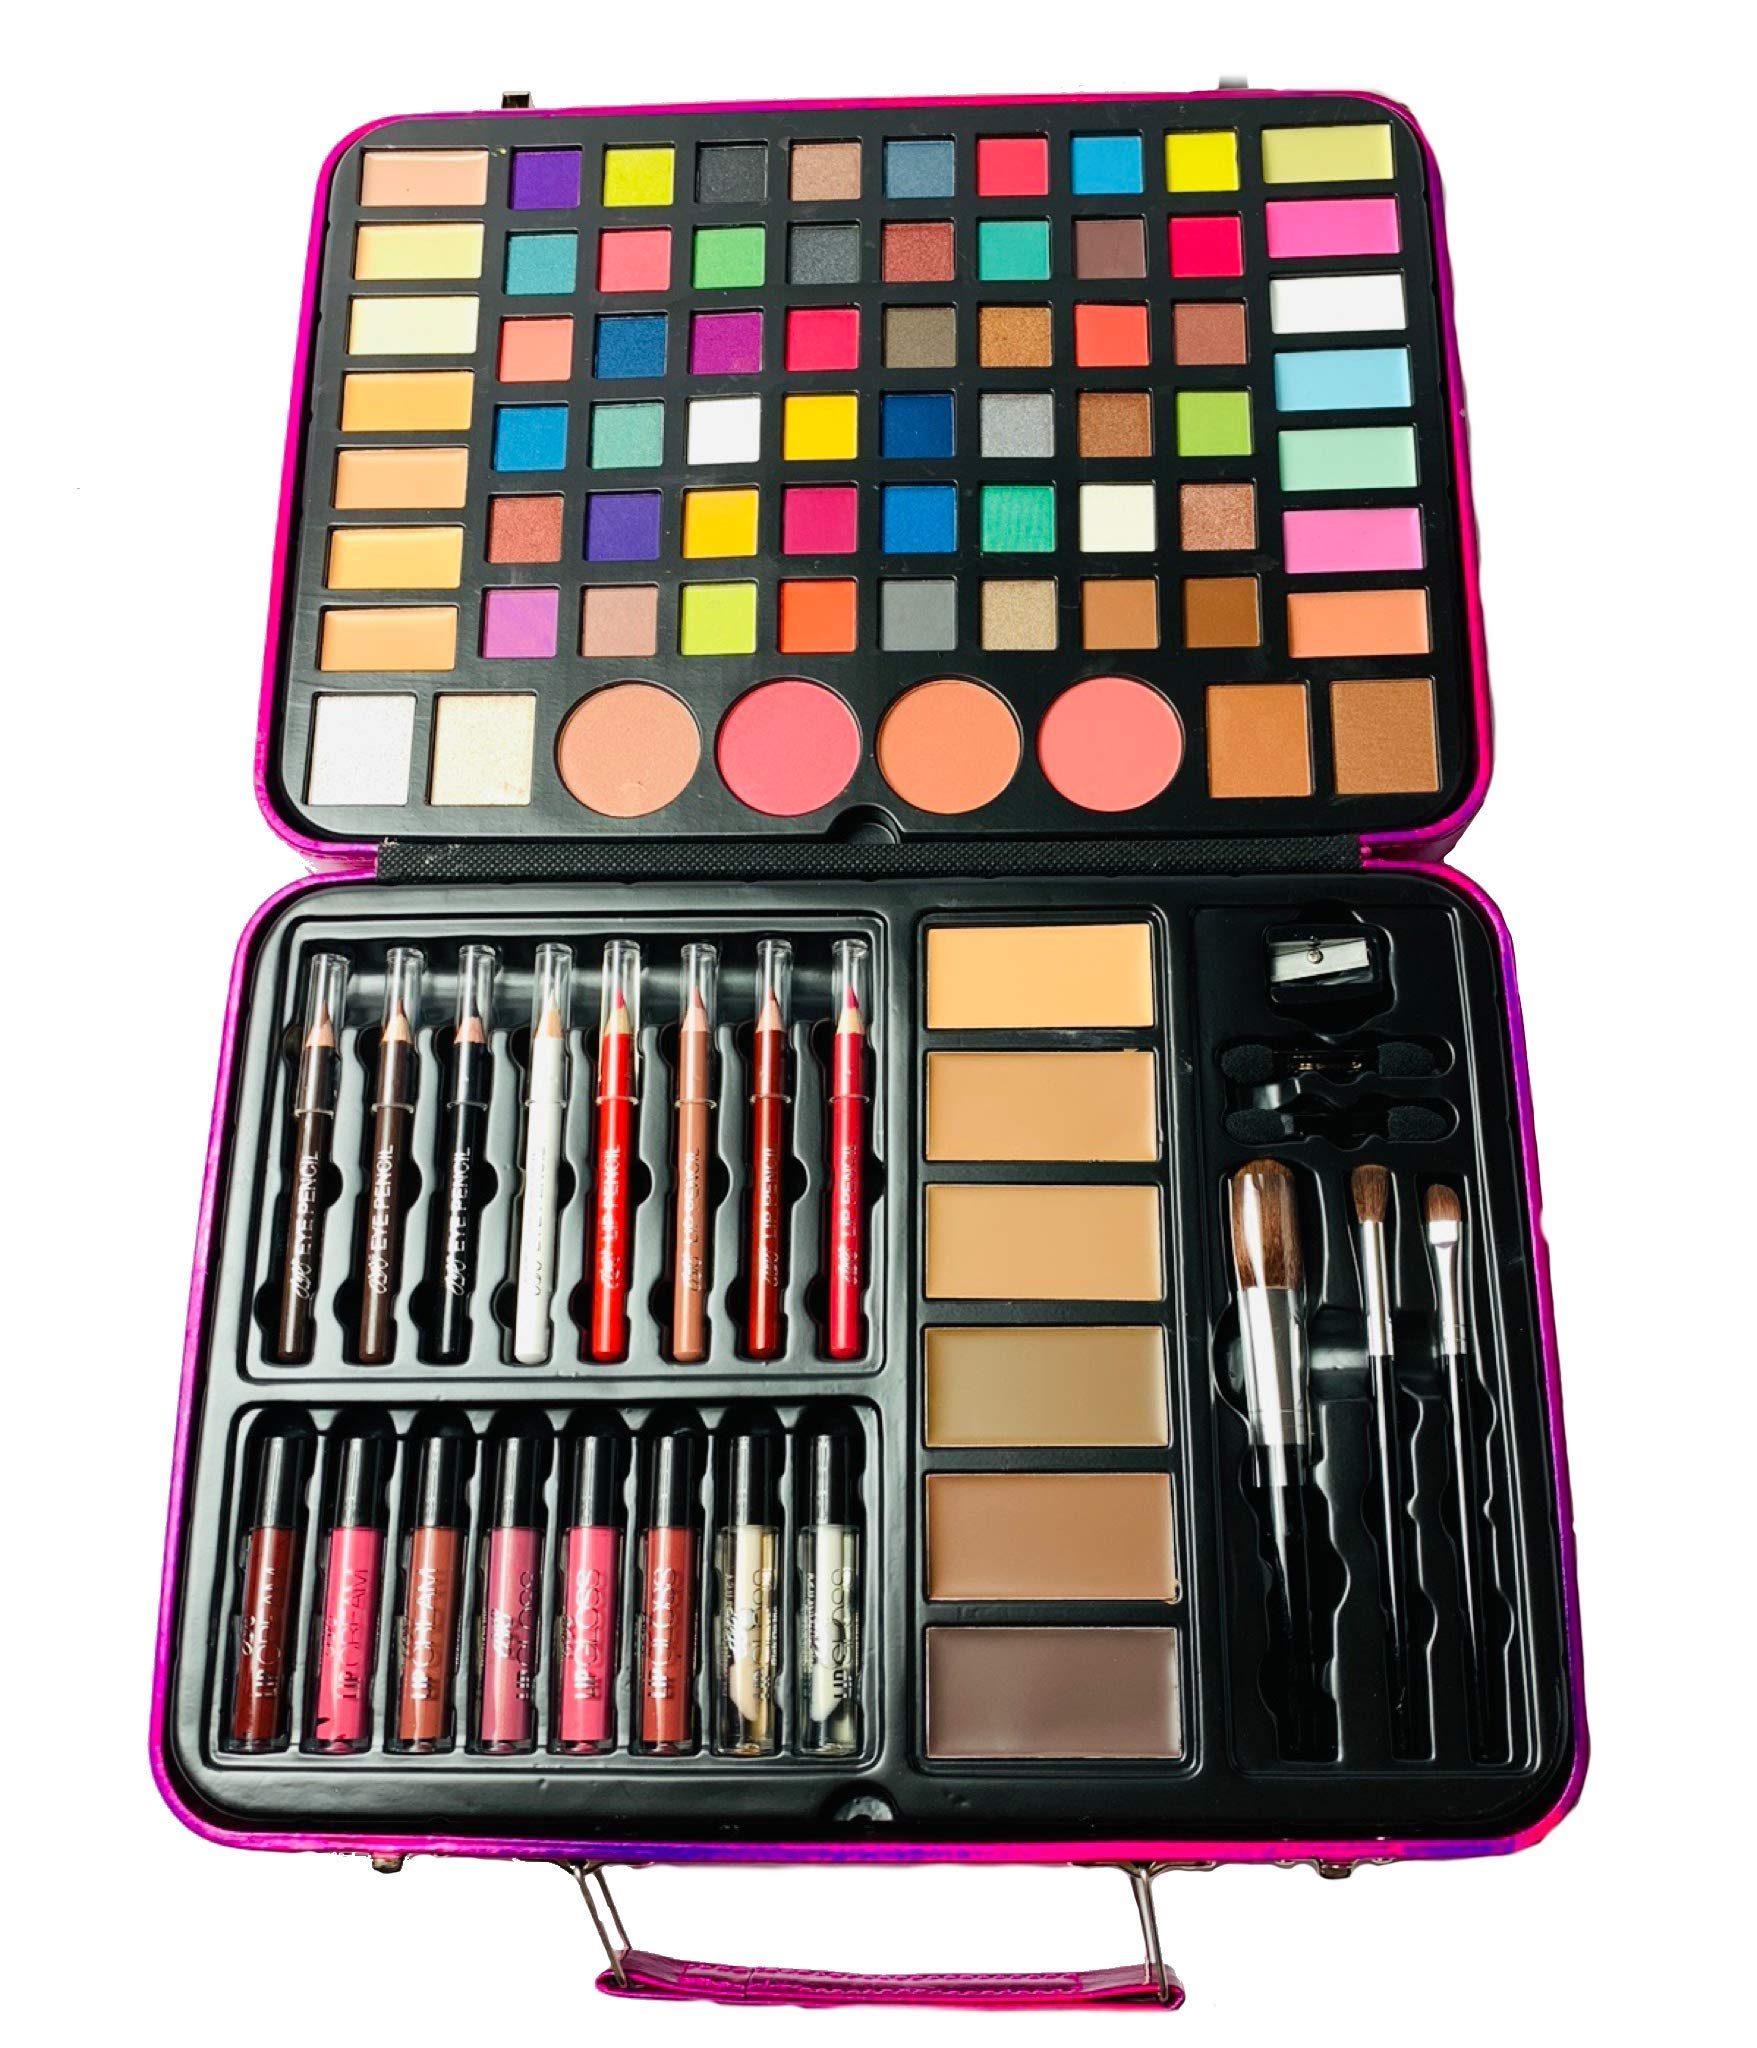 BR Carry All Trunk Professional Makeup Kit - Eyeshadow, Eyeliner, Lip Stick All In One Clear Case (RedCase) by BR (Image #2)